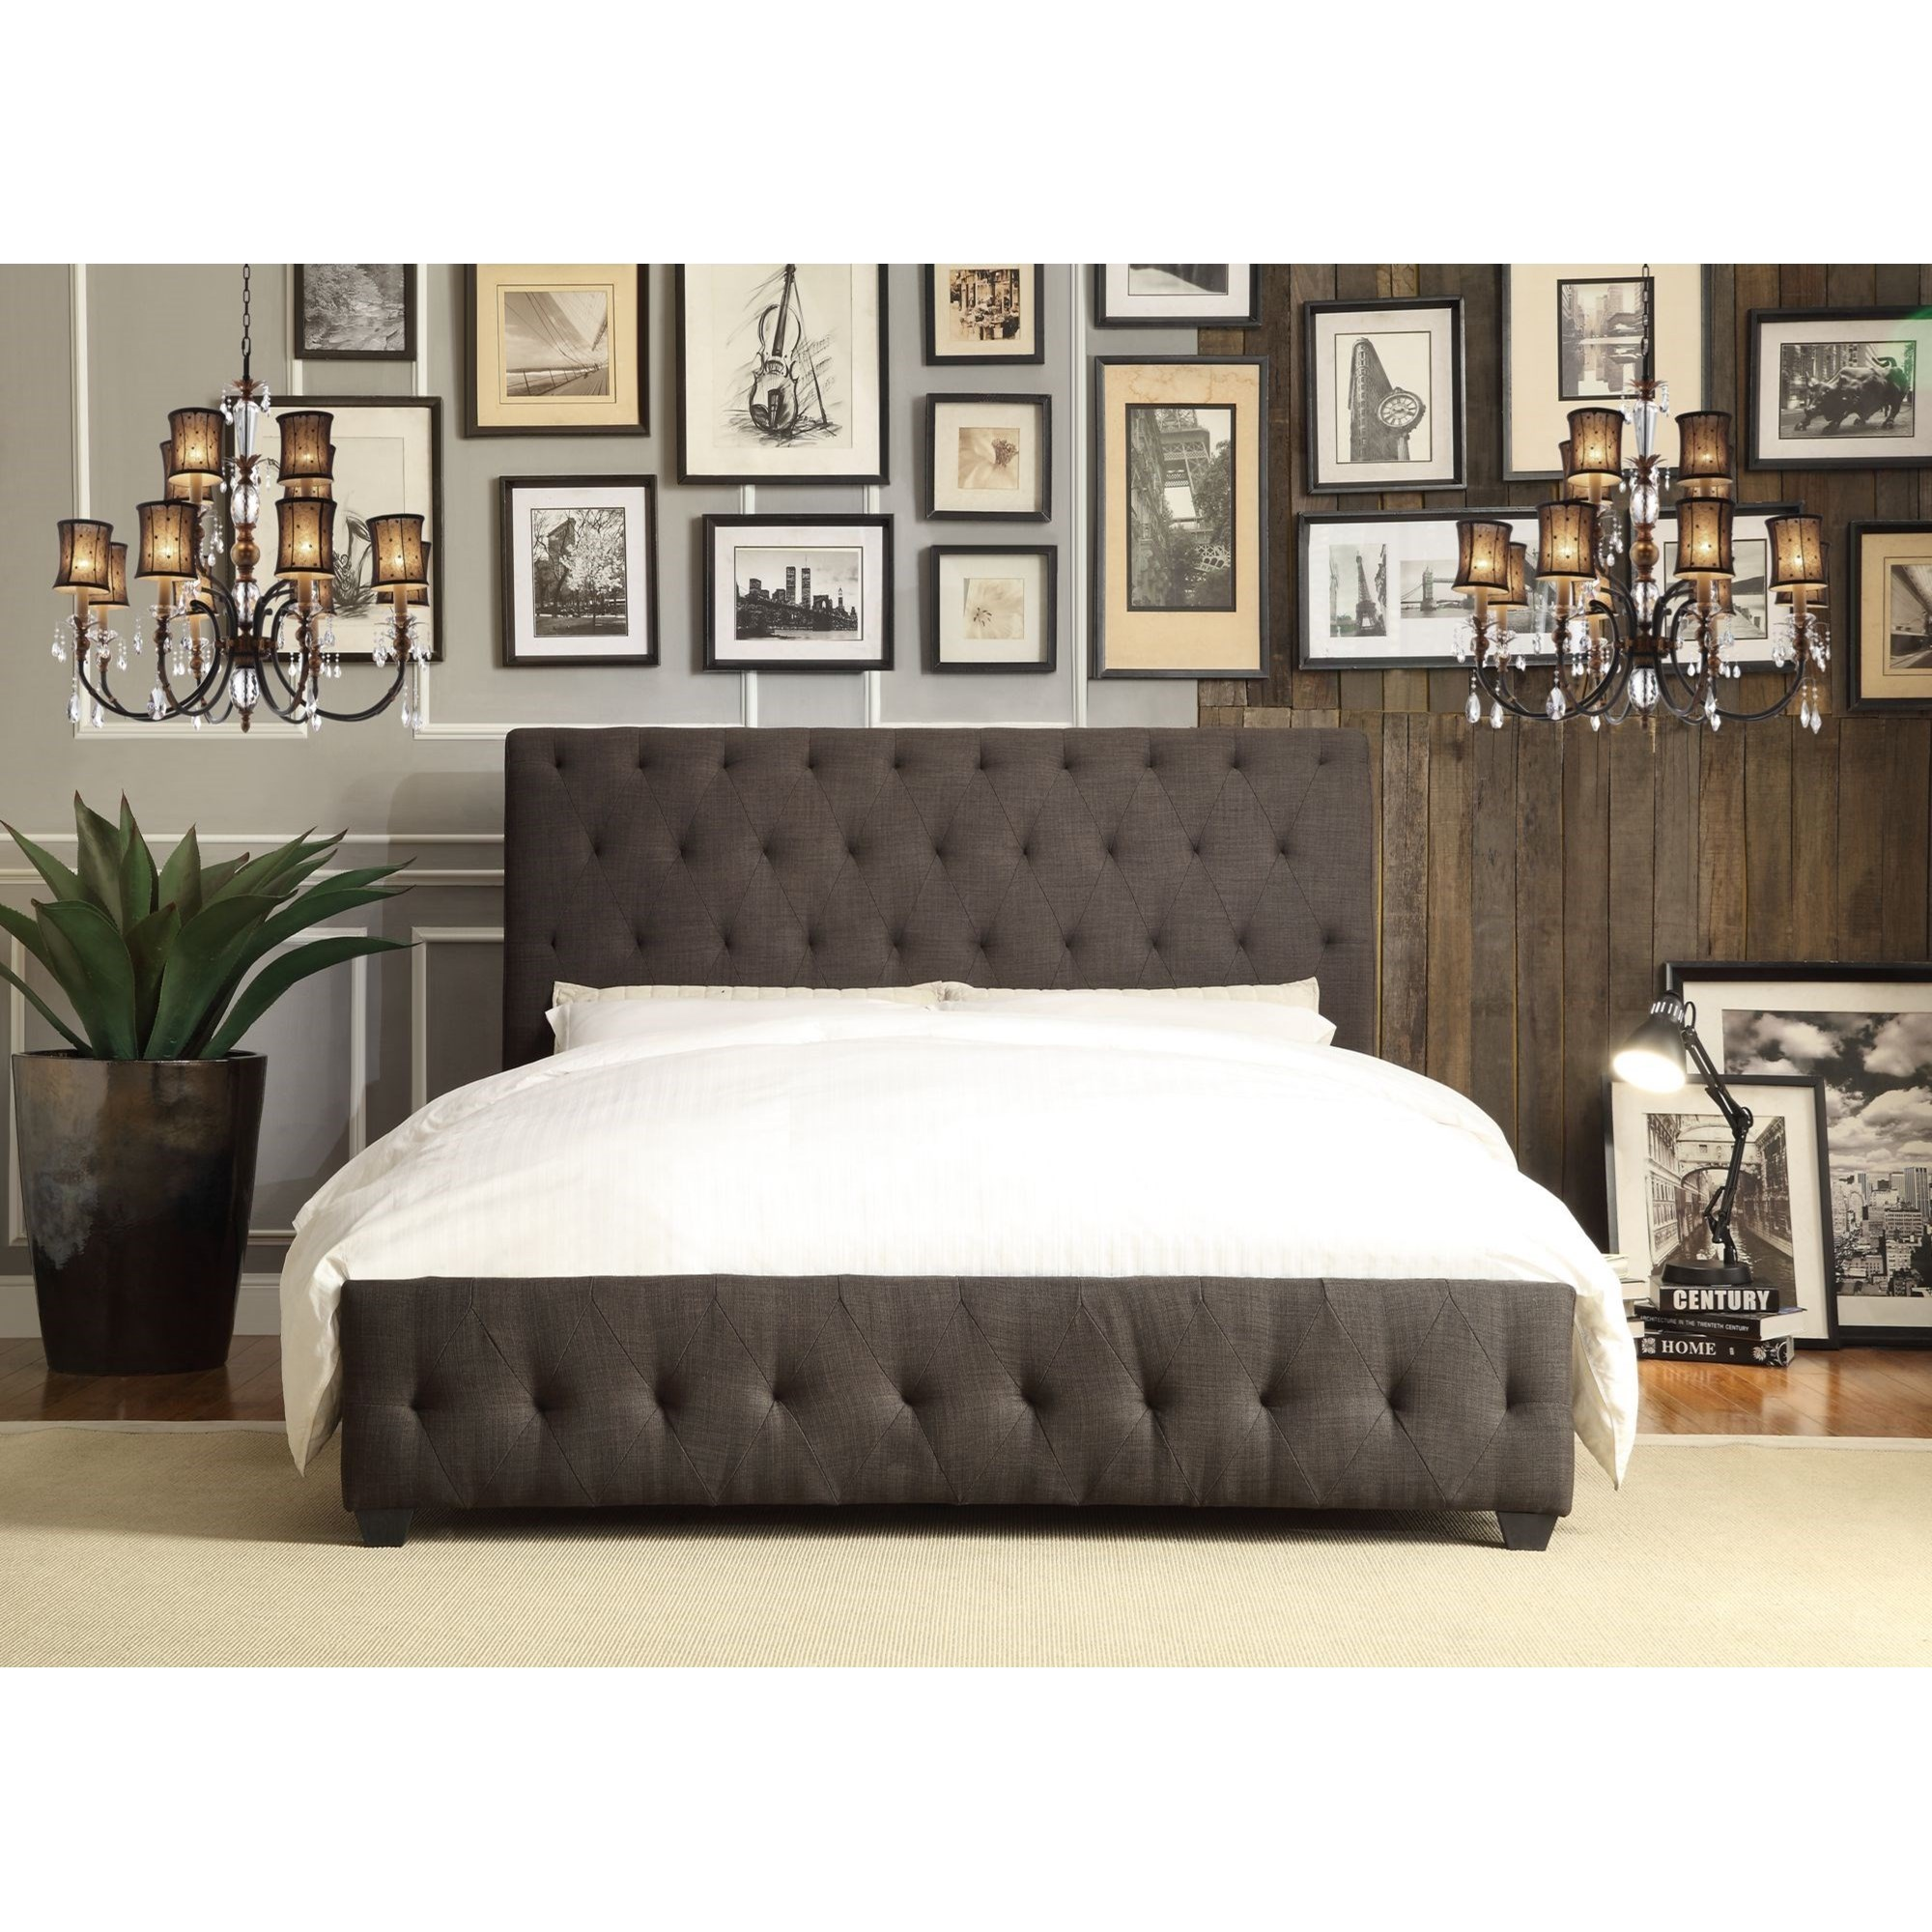 Baldwyn Contemporary Queen Upholstered Platform Bed With Tufting By Homelegance At Darvin Furniture